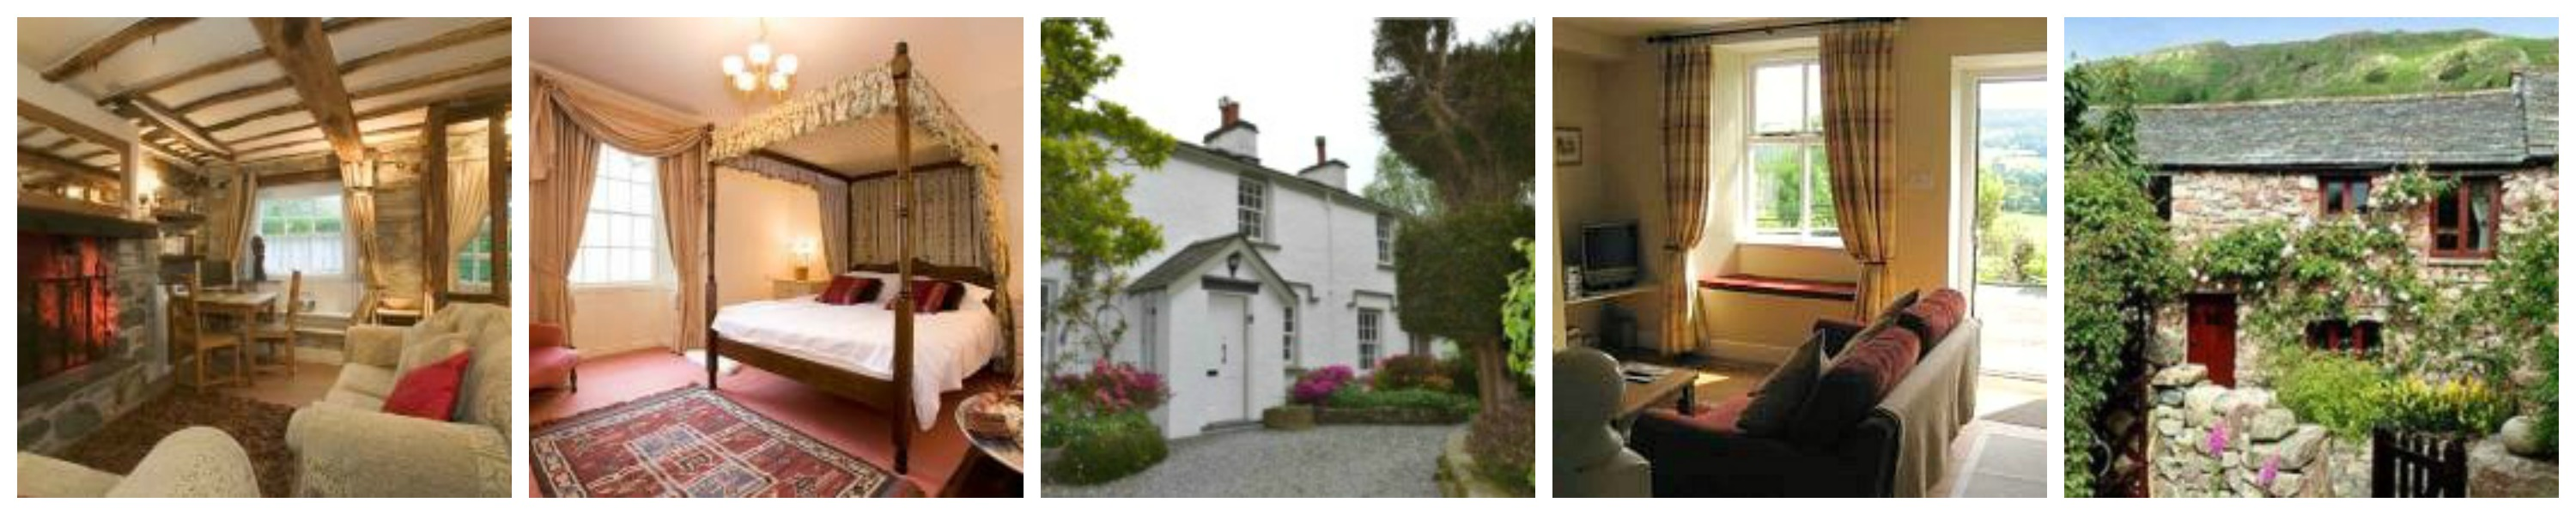 a wonderful selection of self catering cottages in The English Lake District and Cumbria